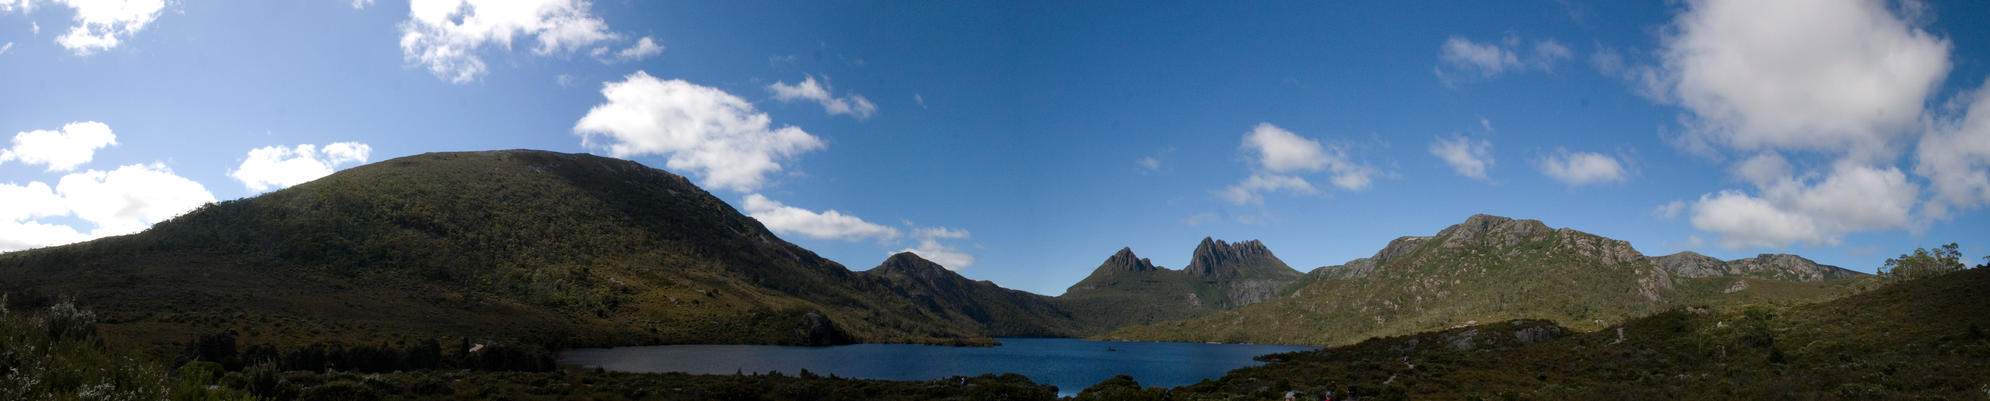 Cradle Mountain 2 by ksenior